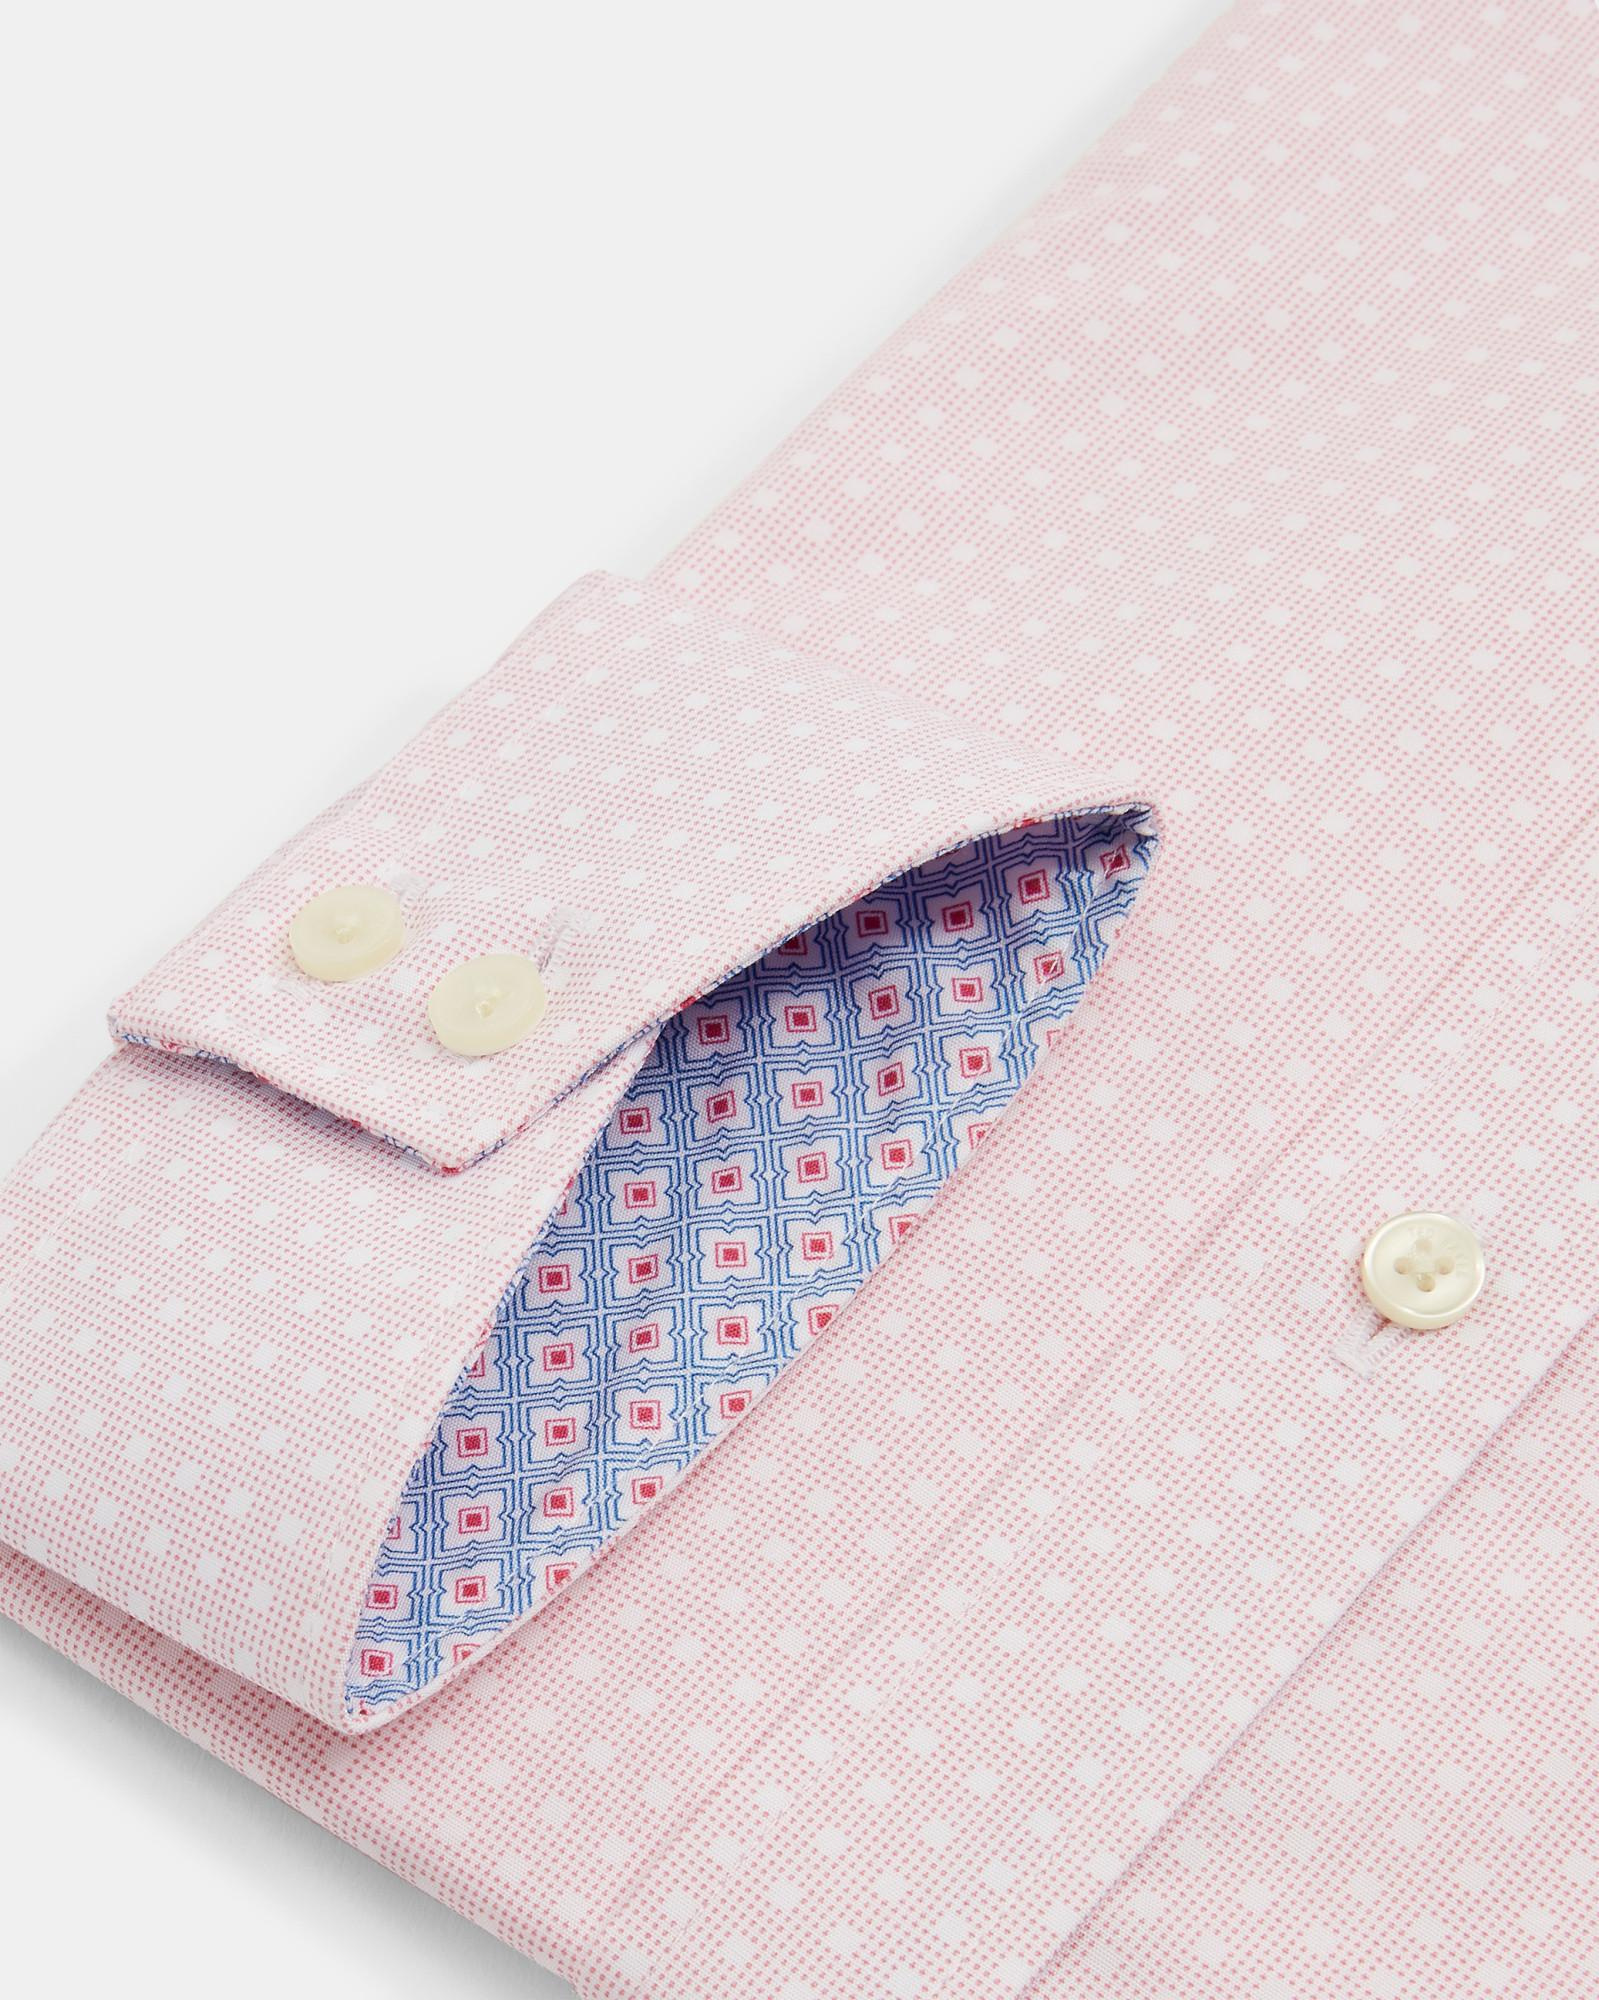 4b0d4cef652b Ted Baker Spot Square Cotton Shirt in Pink for Men - Lyst